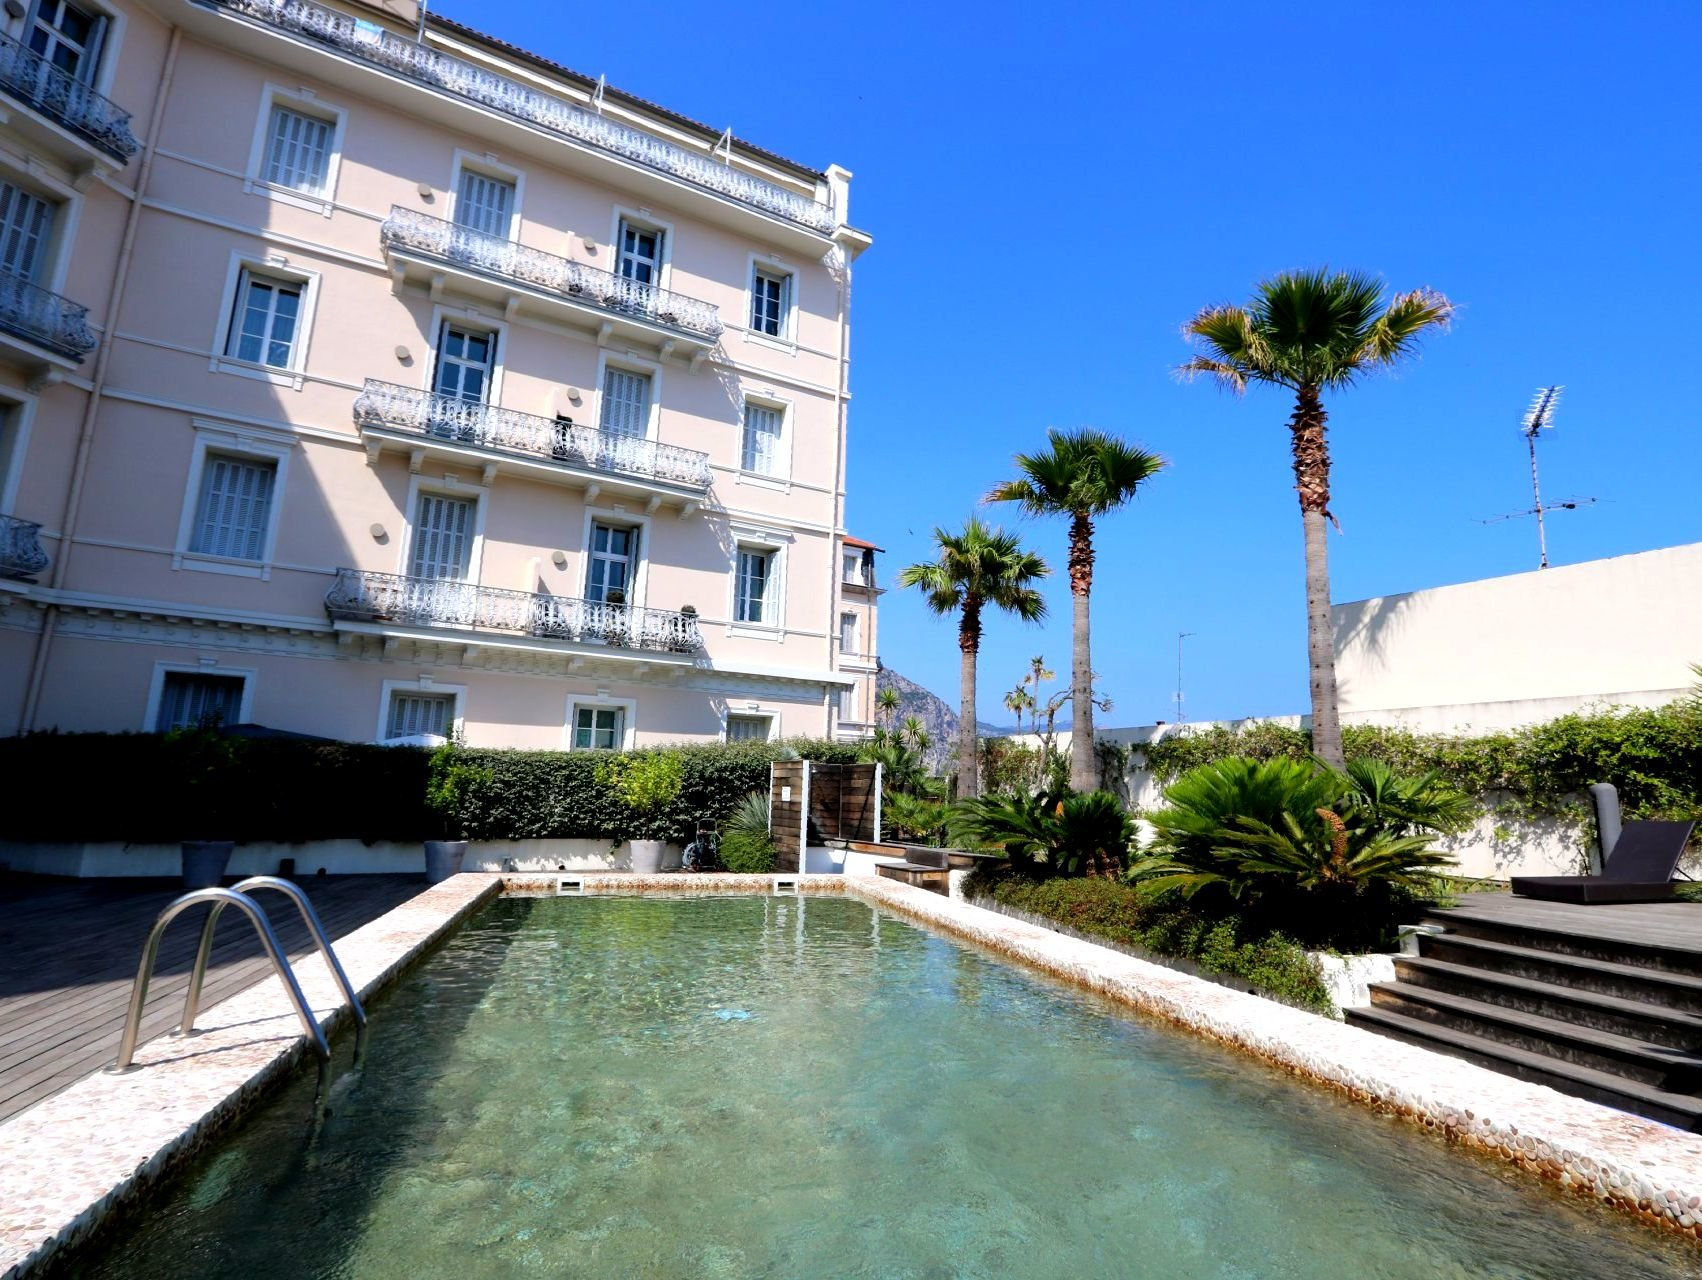 Beaulieu-sur-Mer - Secured appartment